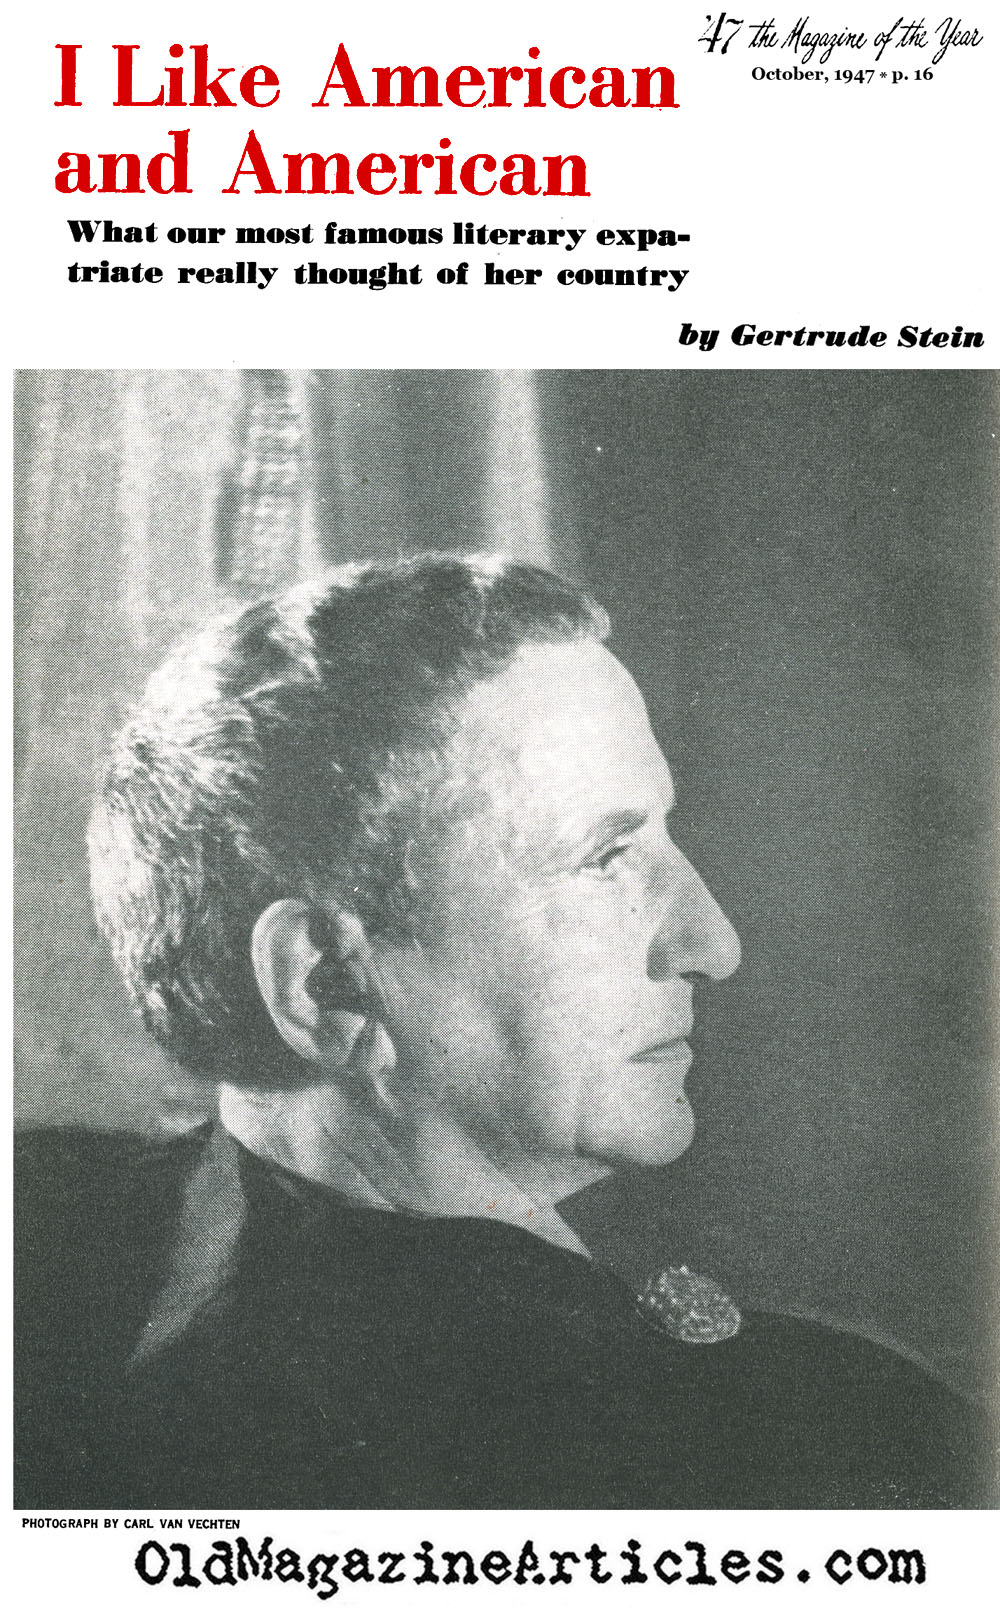 Gertrude Stein on America ('47 Magazine, 1947)